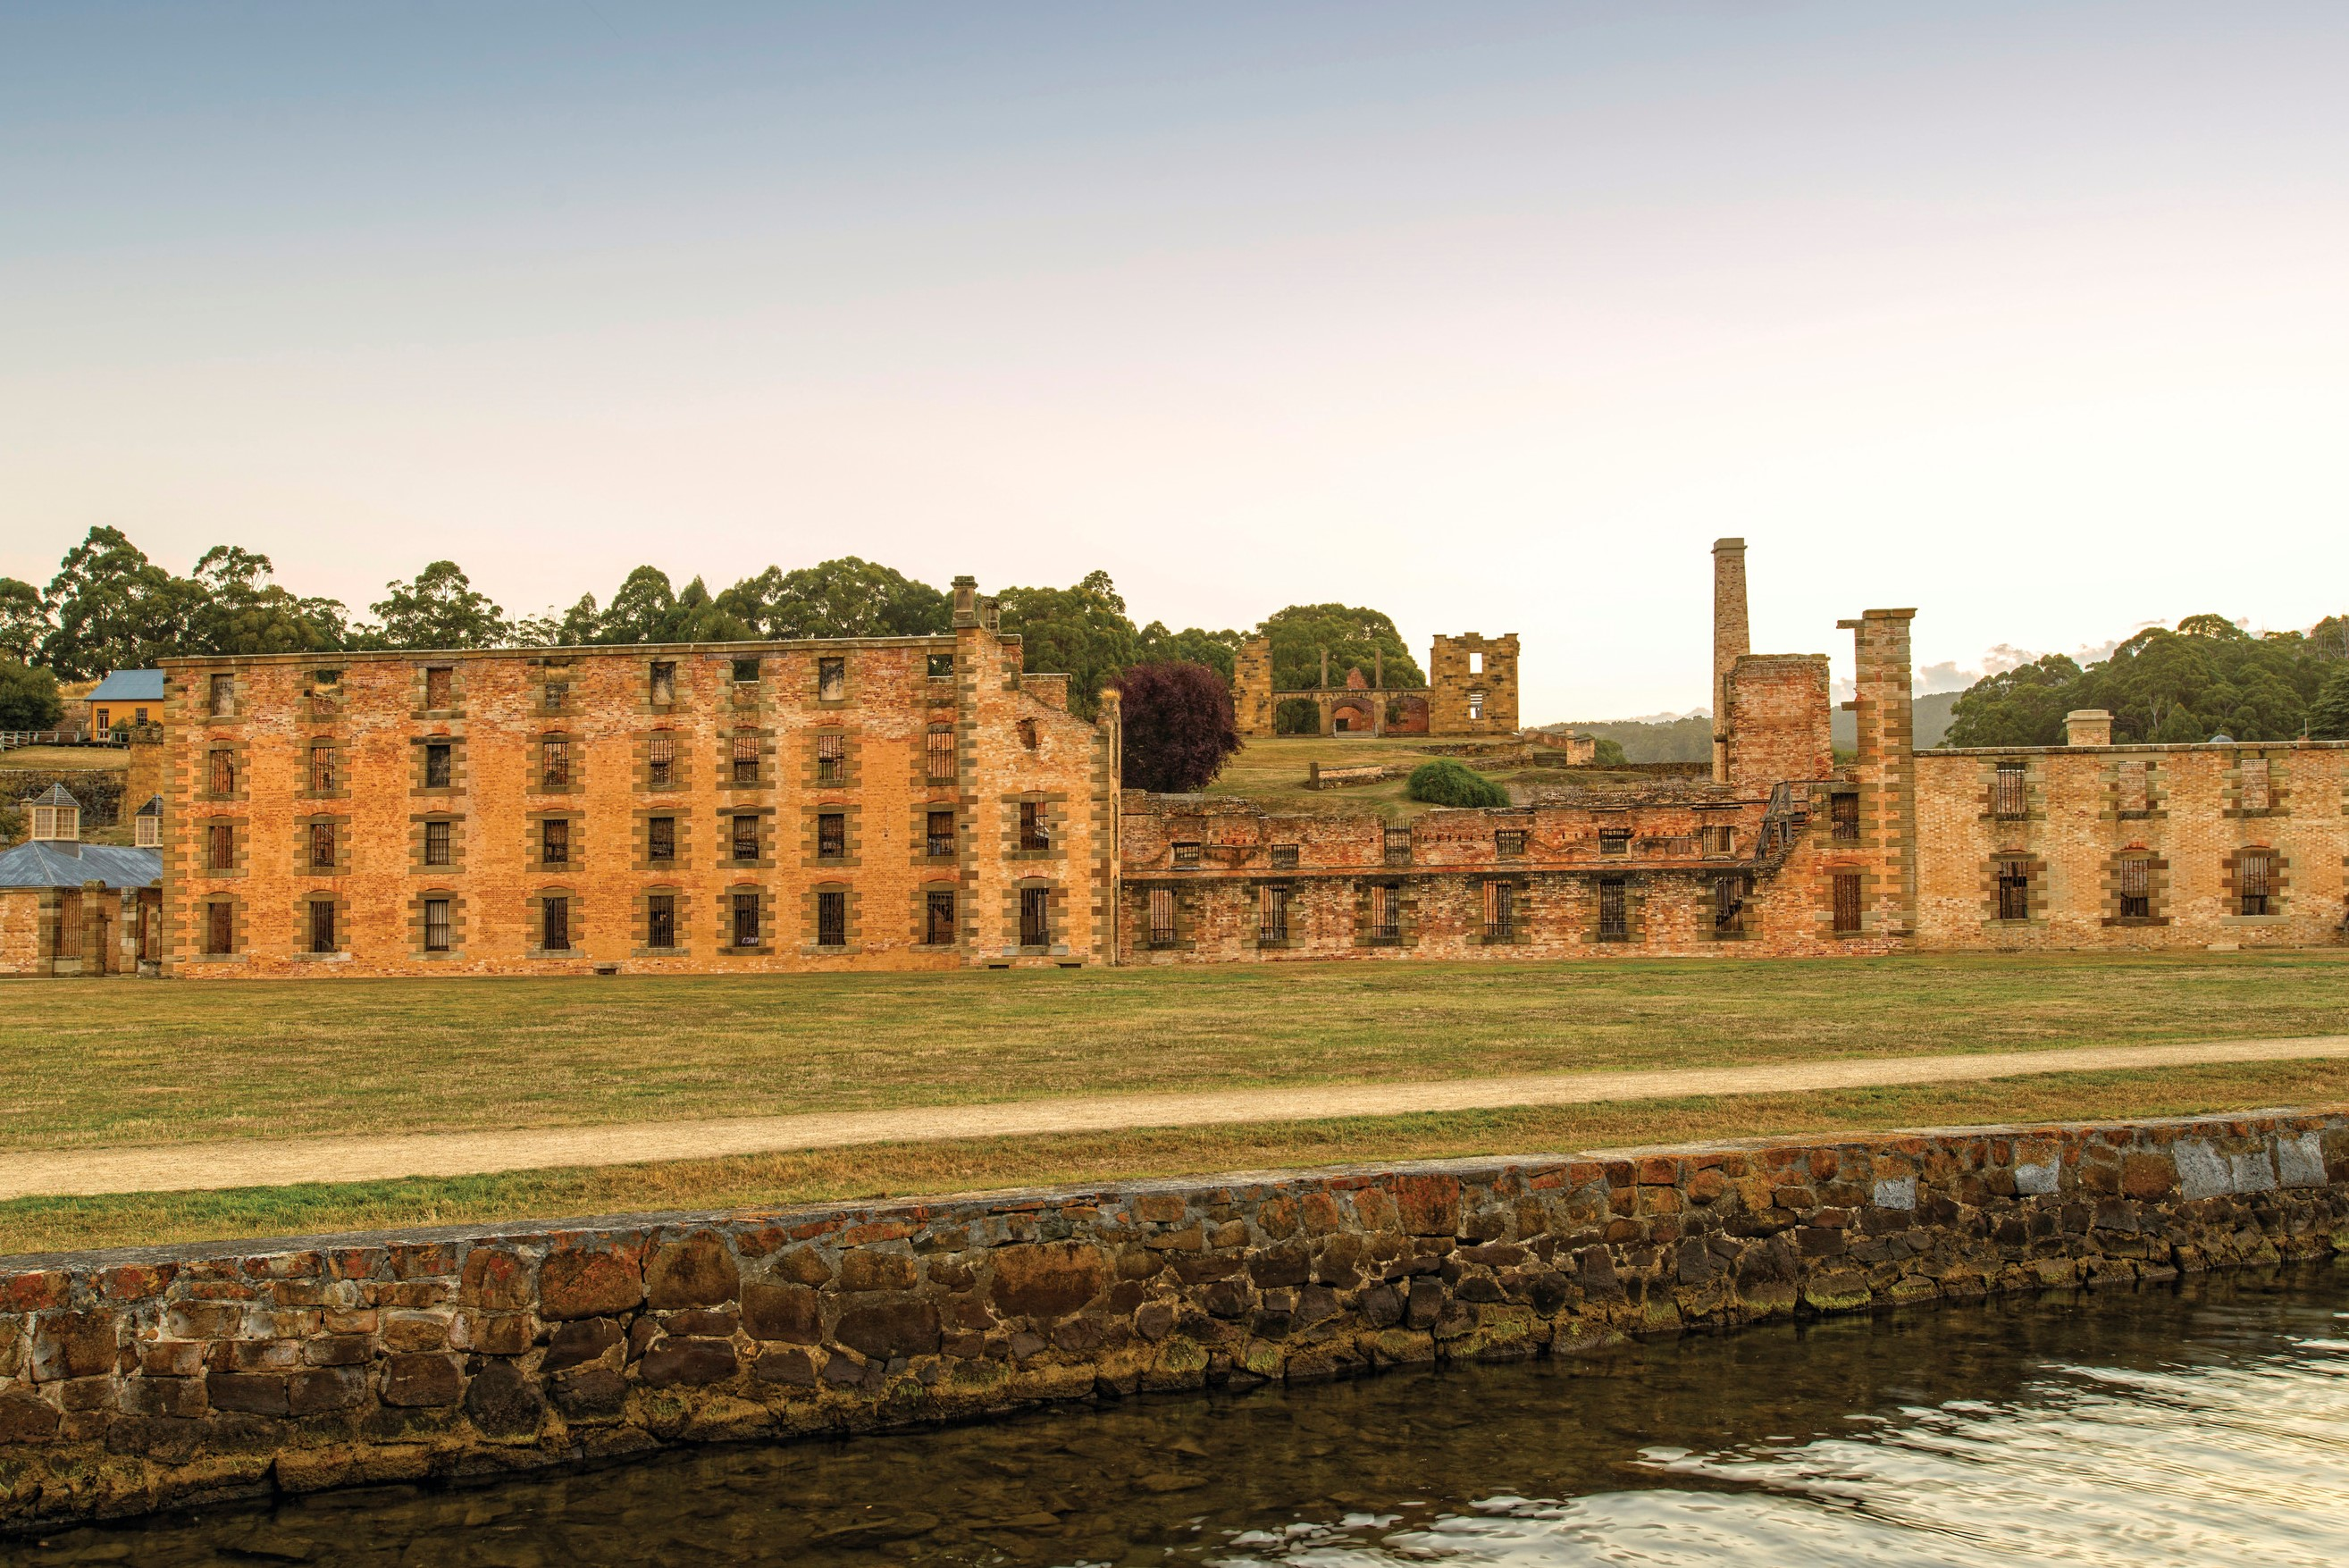 Penitentiary, Port Arthur Historic Site, credit - Tourism Tasmania & Rob Burnett